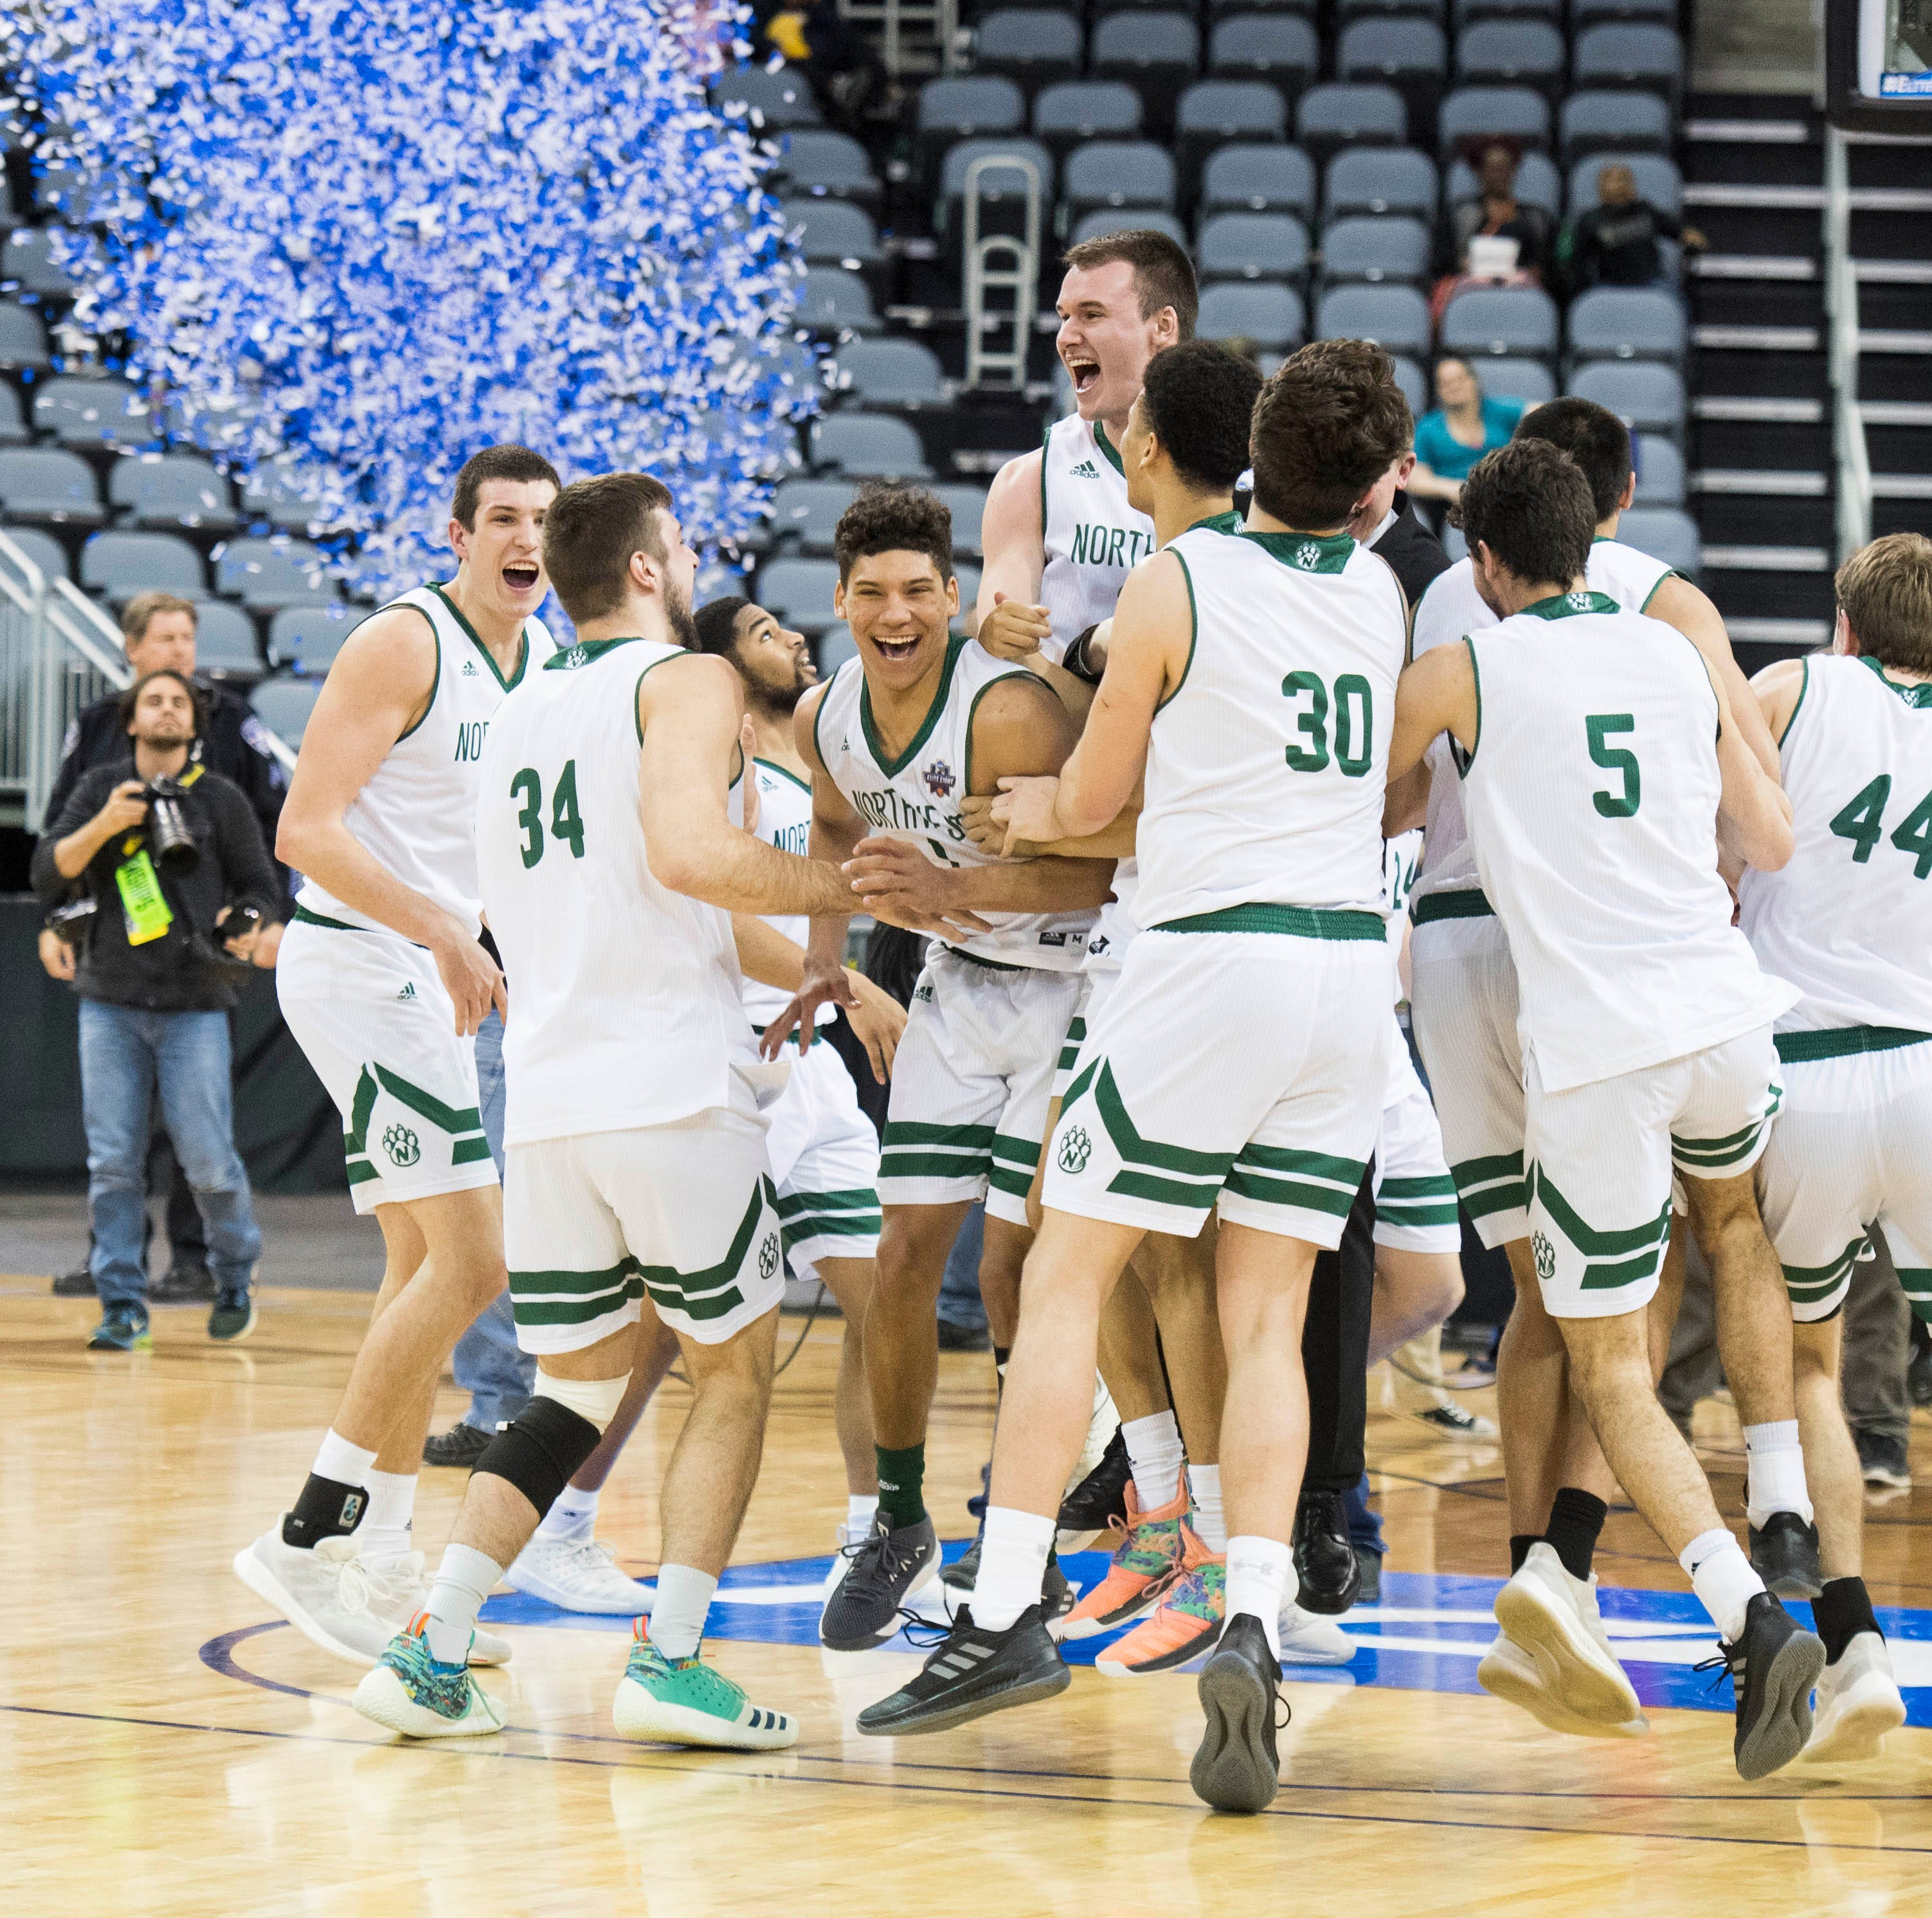 Northwest Missouri State wins Division II championship to cap perfect season